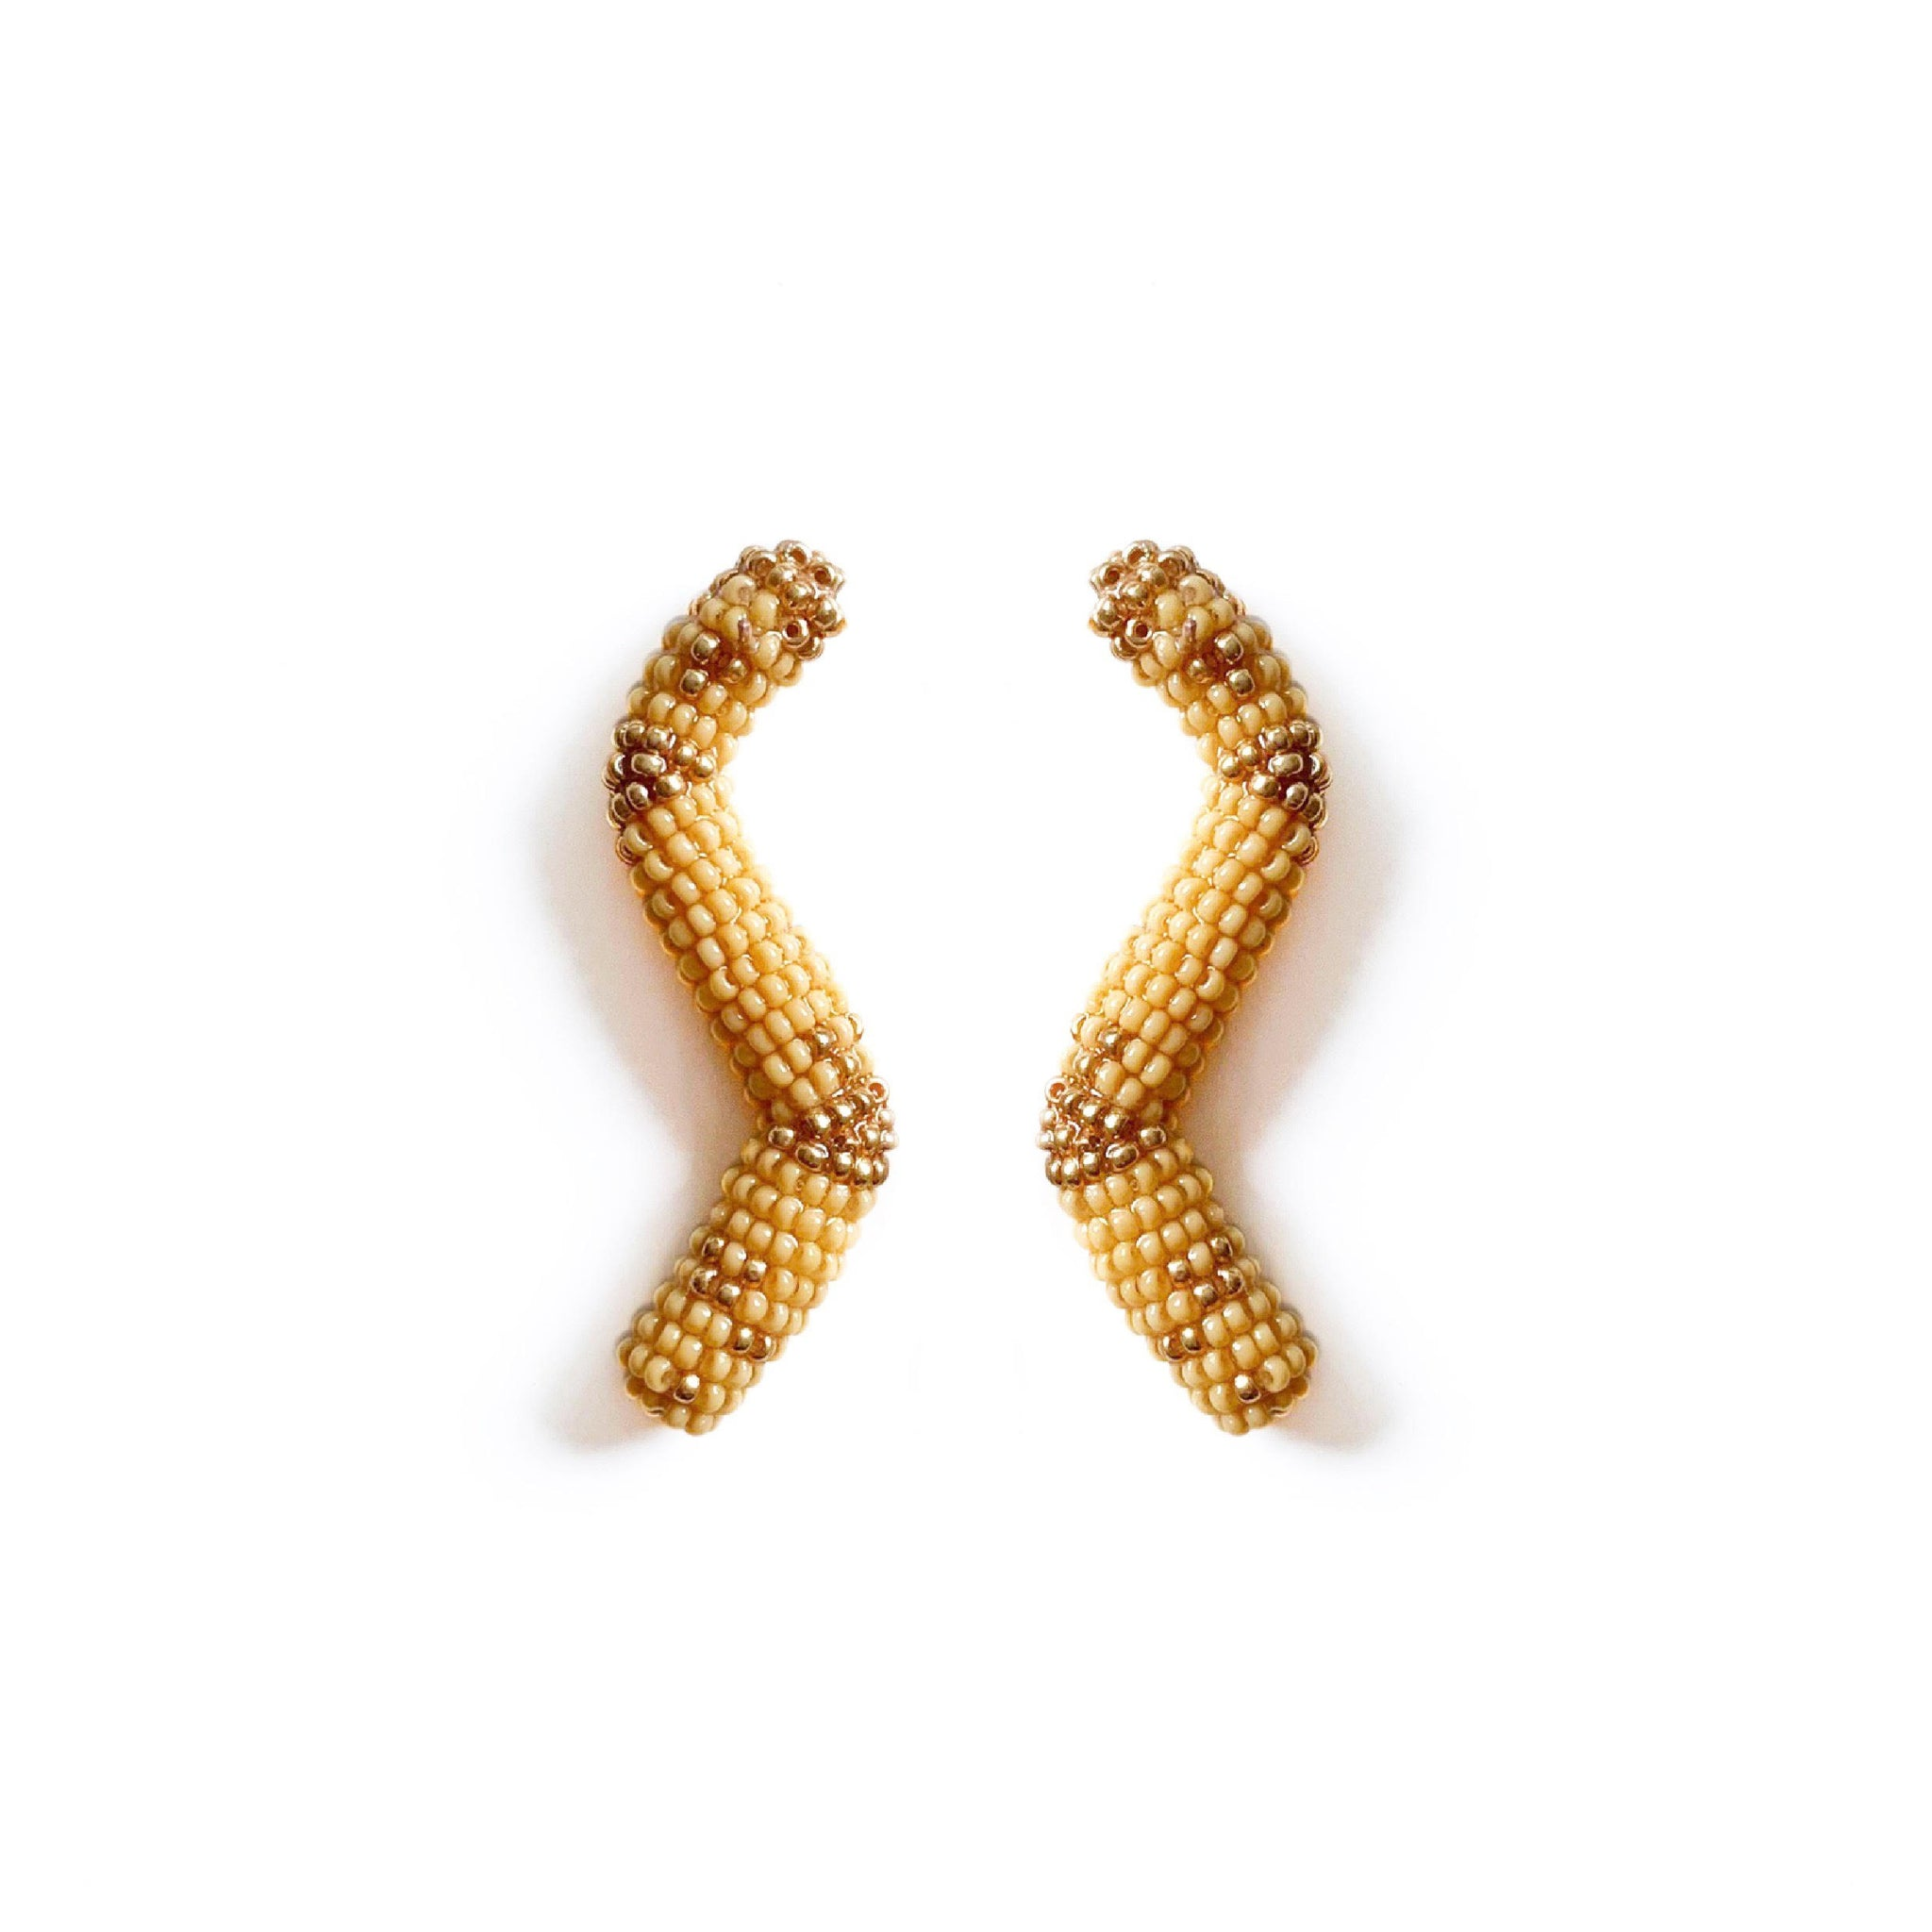 RIOLA EARRINGS